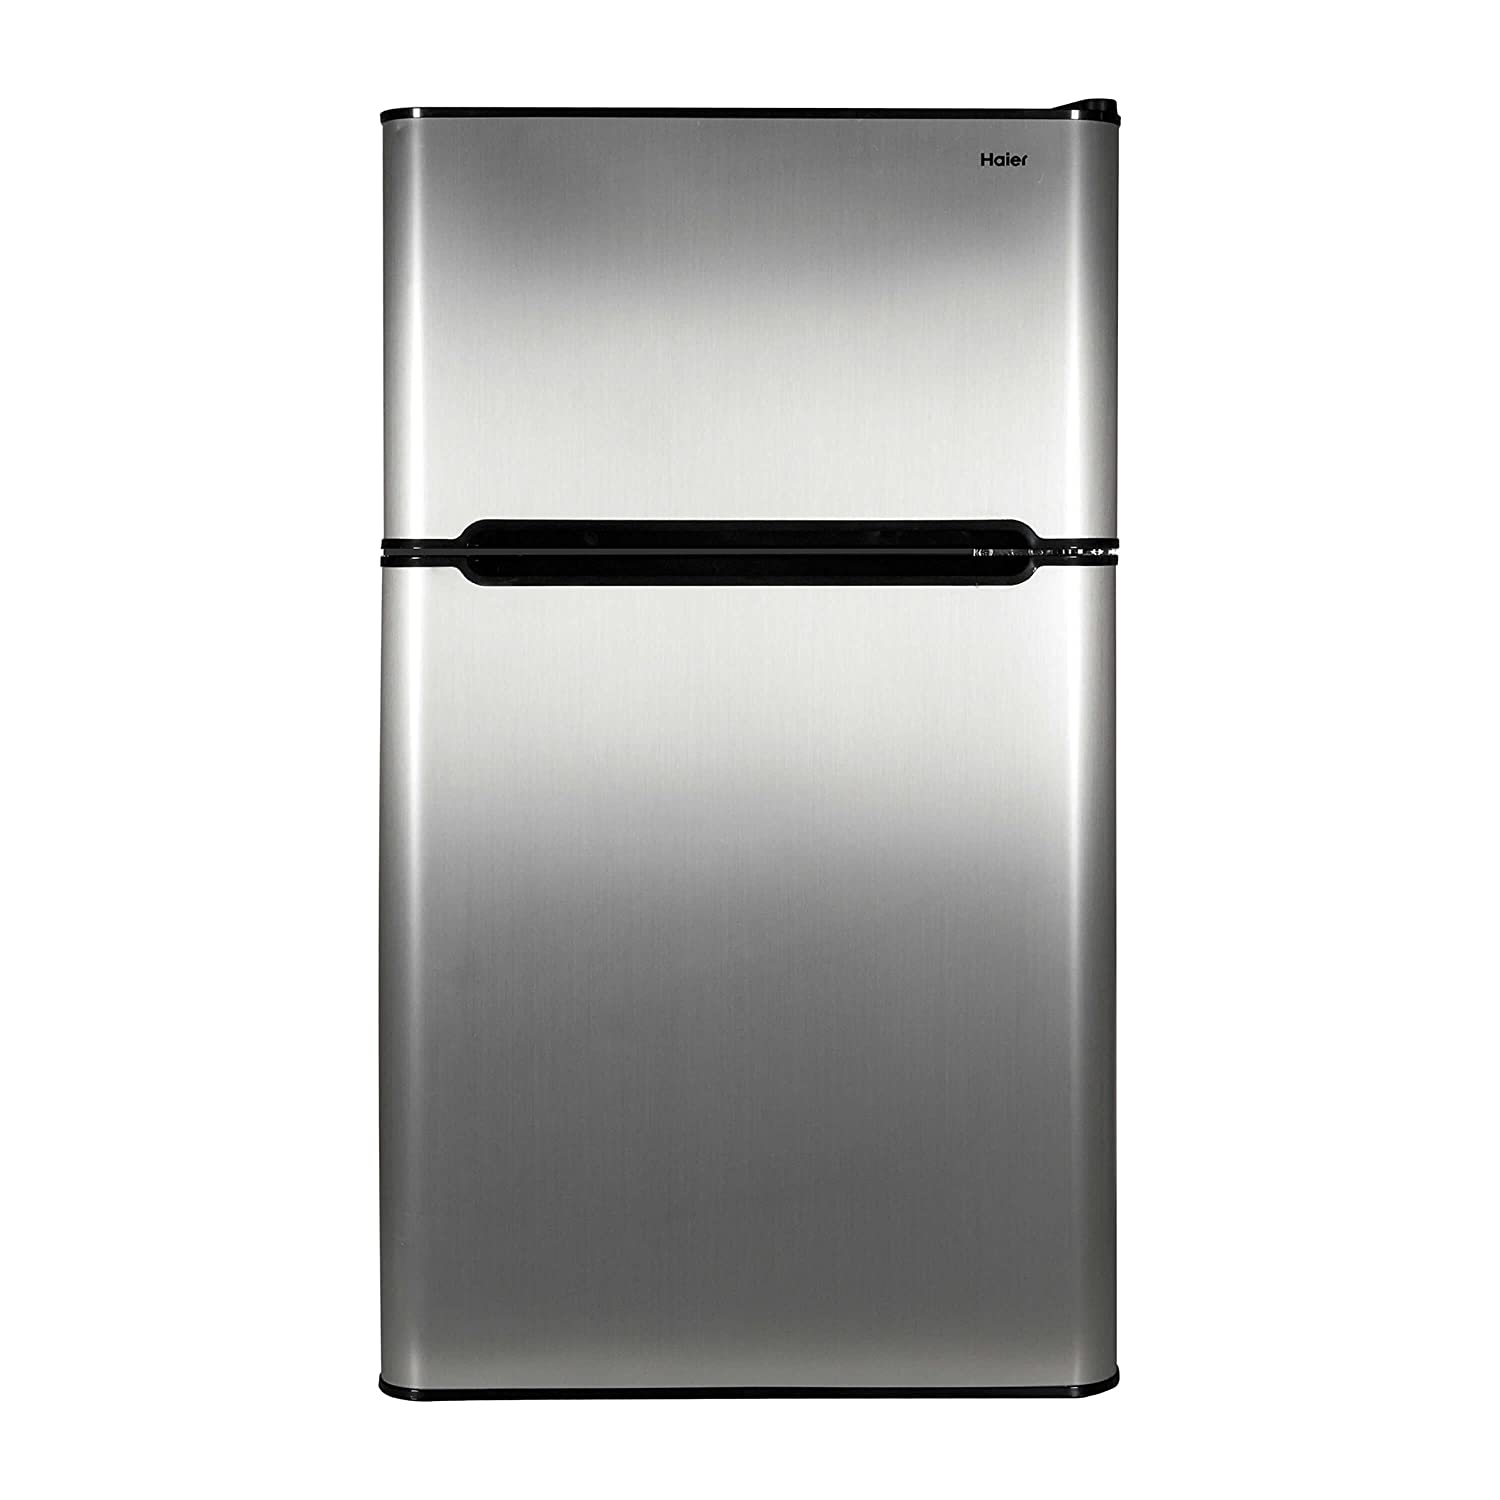 Haier 3.2 cu ft Refrigerator, Stainless Steel 2-Door for Dorm, Garage, Camper, Gameroom, Basement or Office with Separate Freezer Compartment for Cold Food Storage and Frozen Meals HC32TW10SV